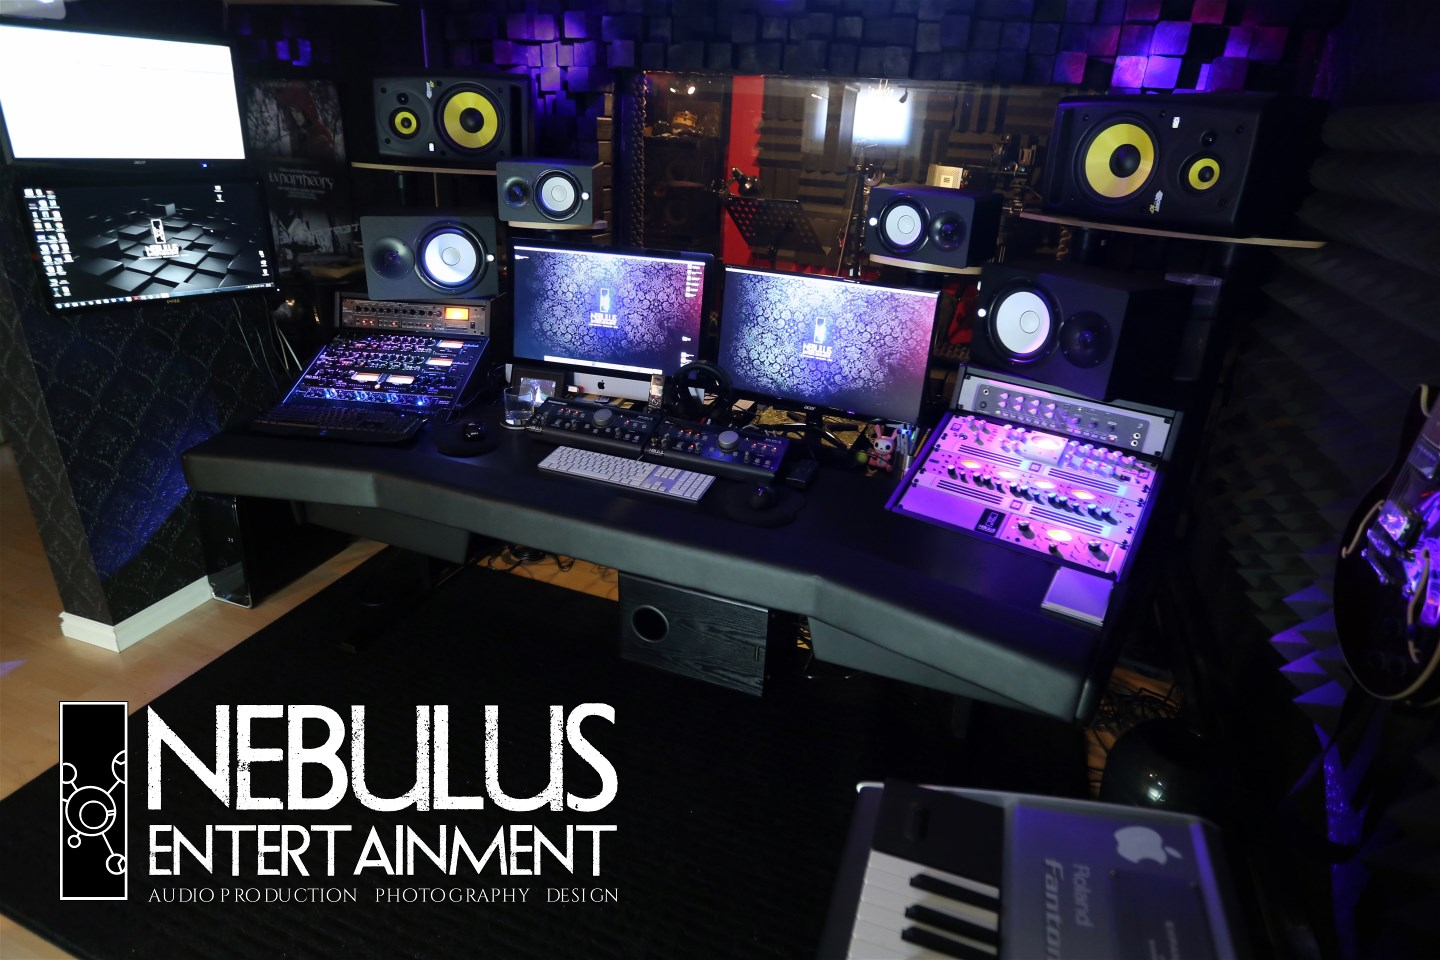 Nebulus Entertainment 71dpi